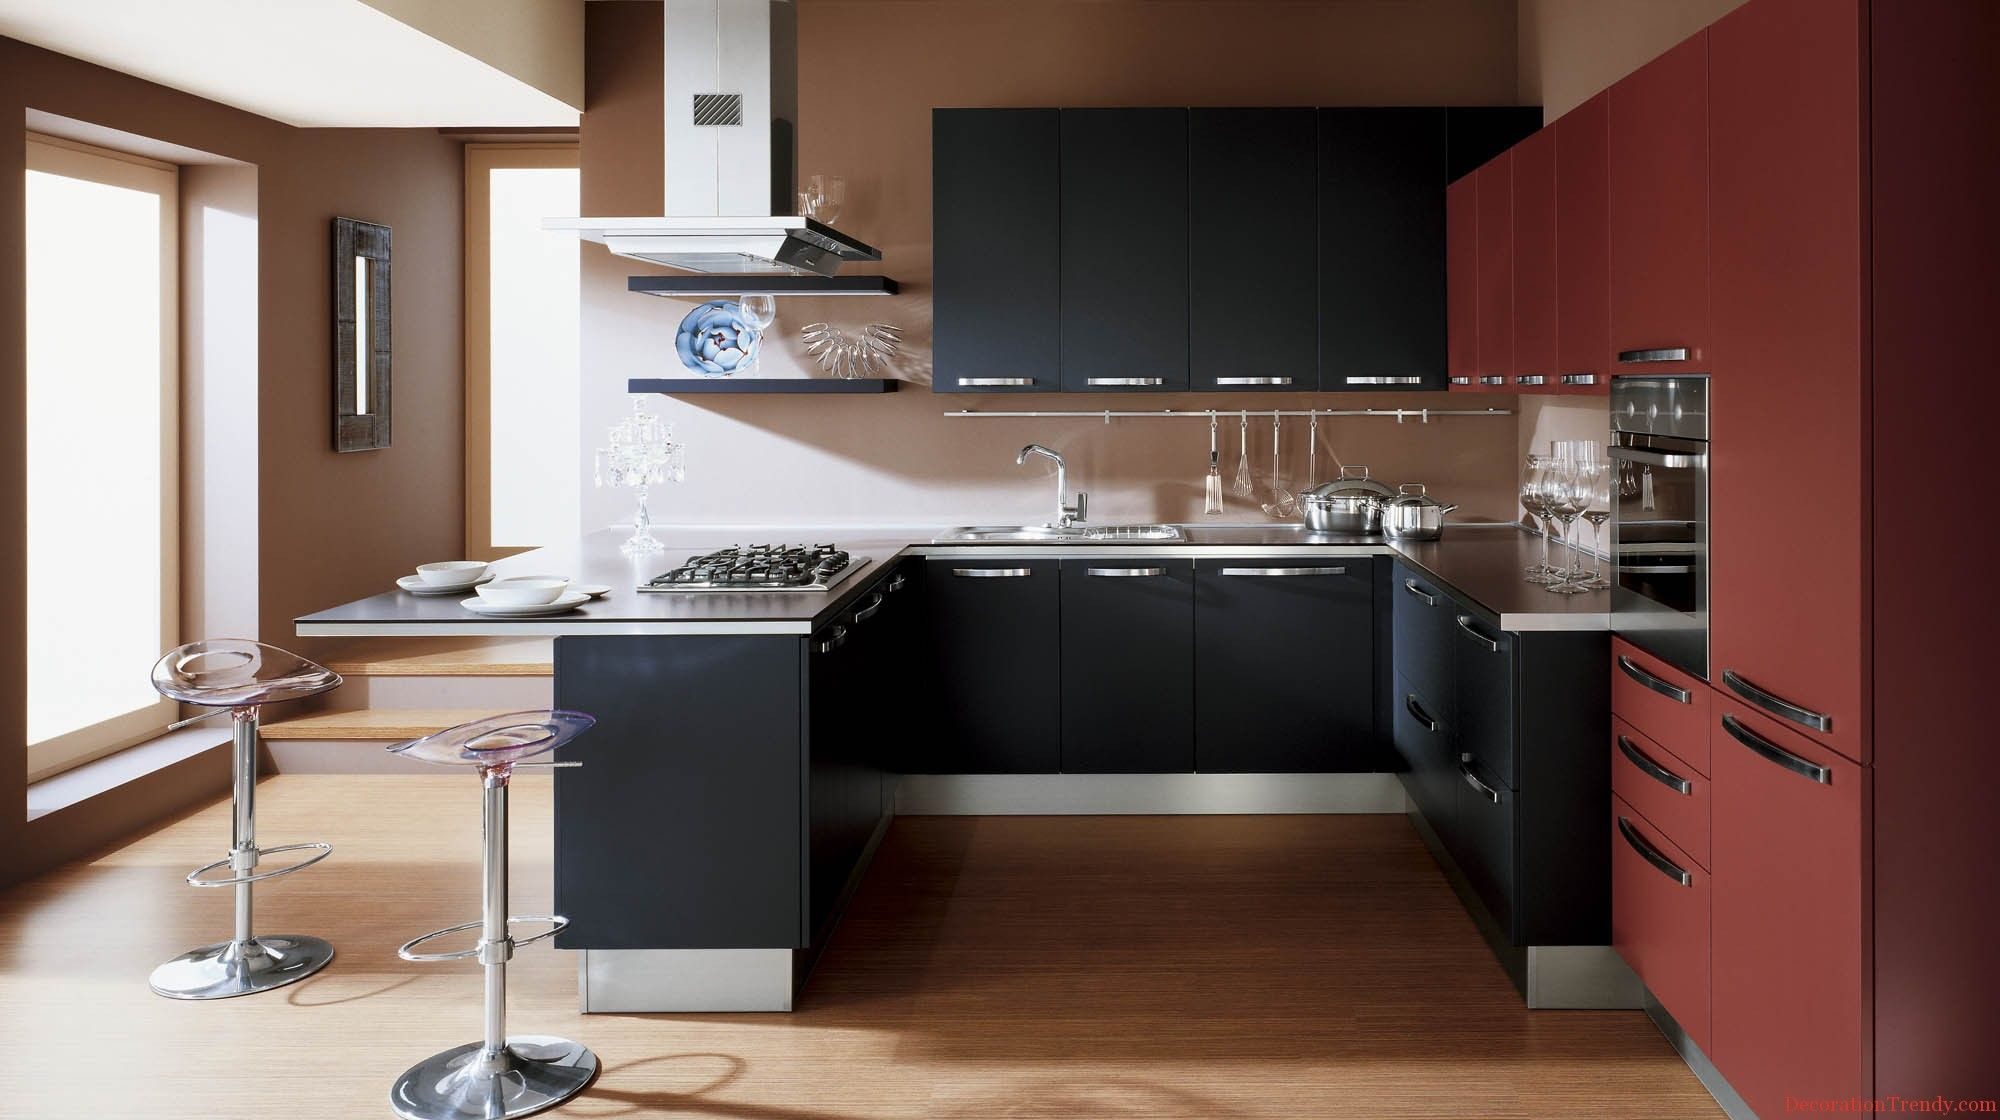 Contemporary Kitchen Design For Small Spaces Awesome 2013 Decorating Ideas For Small Kitchens  Kitchen  Pinterest Inspiration Design